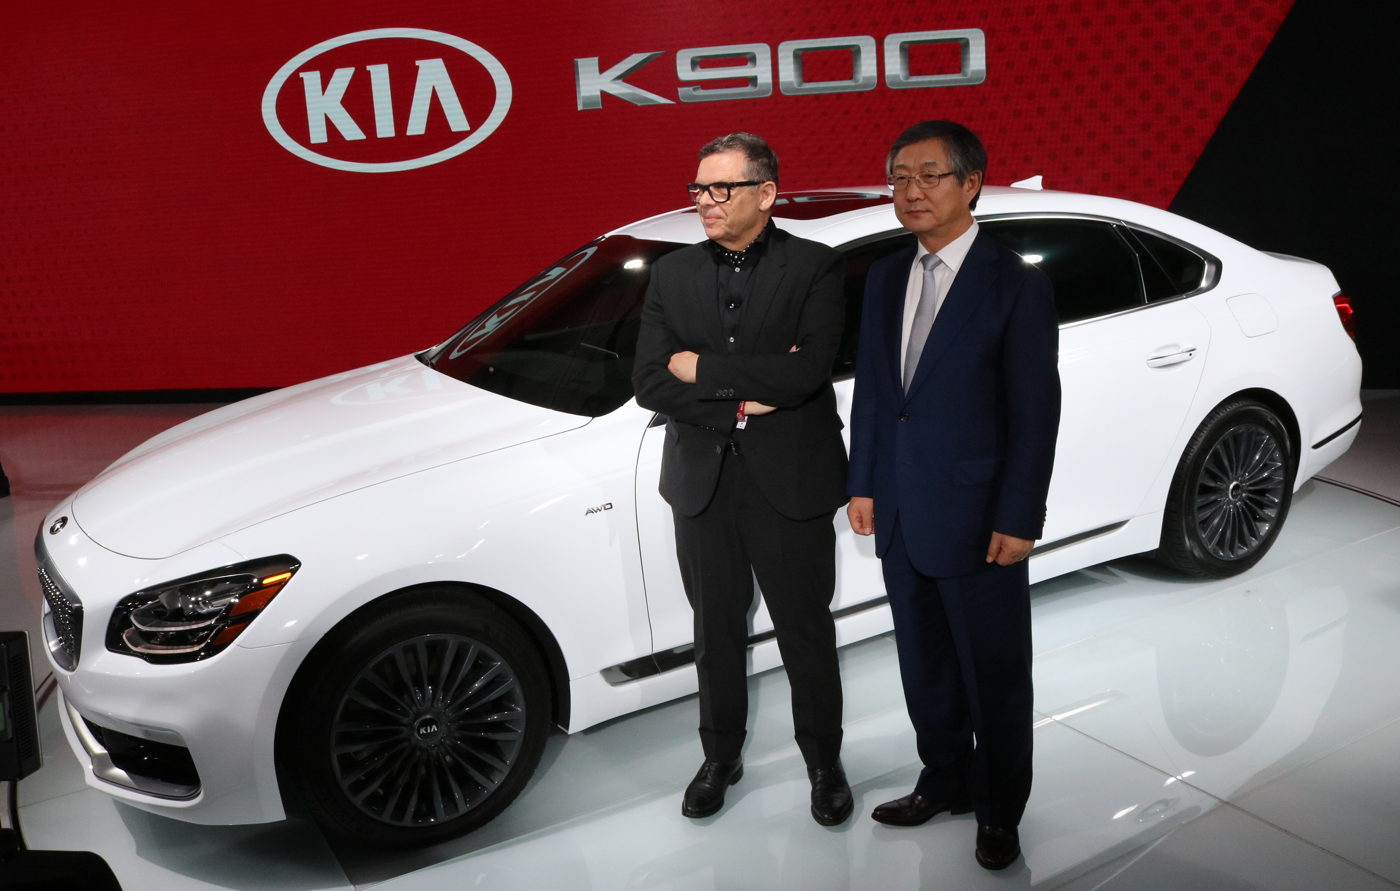 2019 Kia K900 at NY Auto Show with Officers